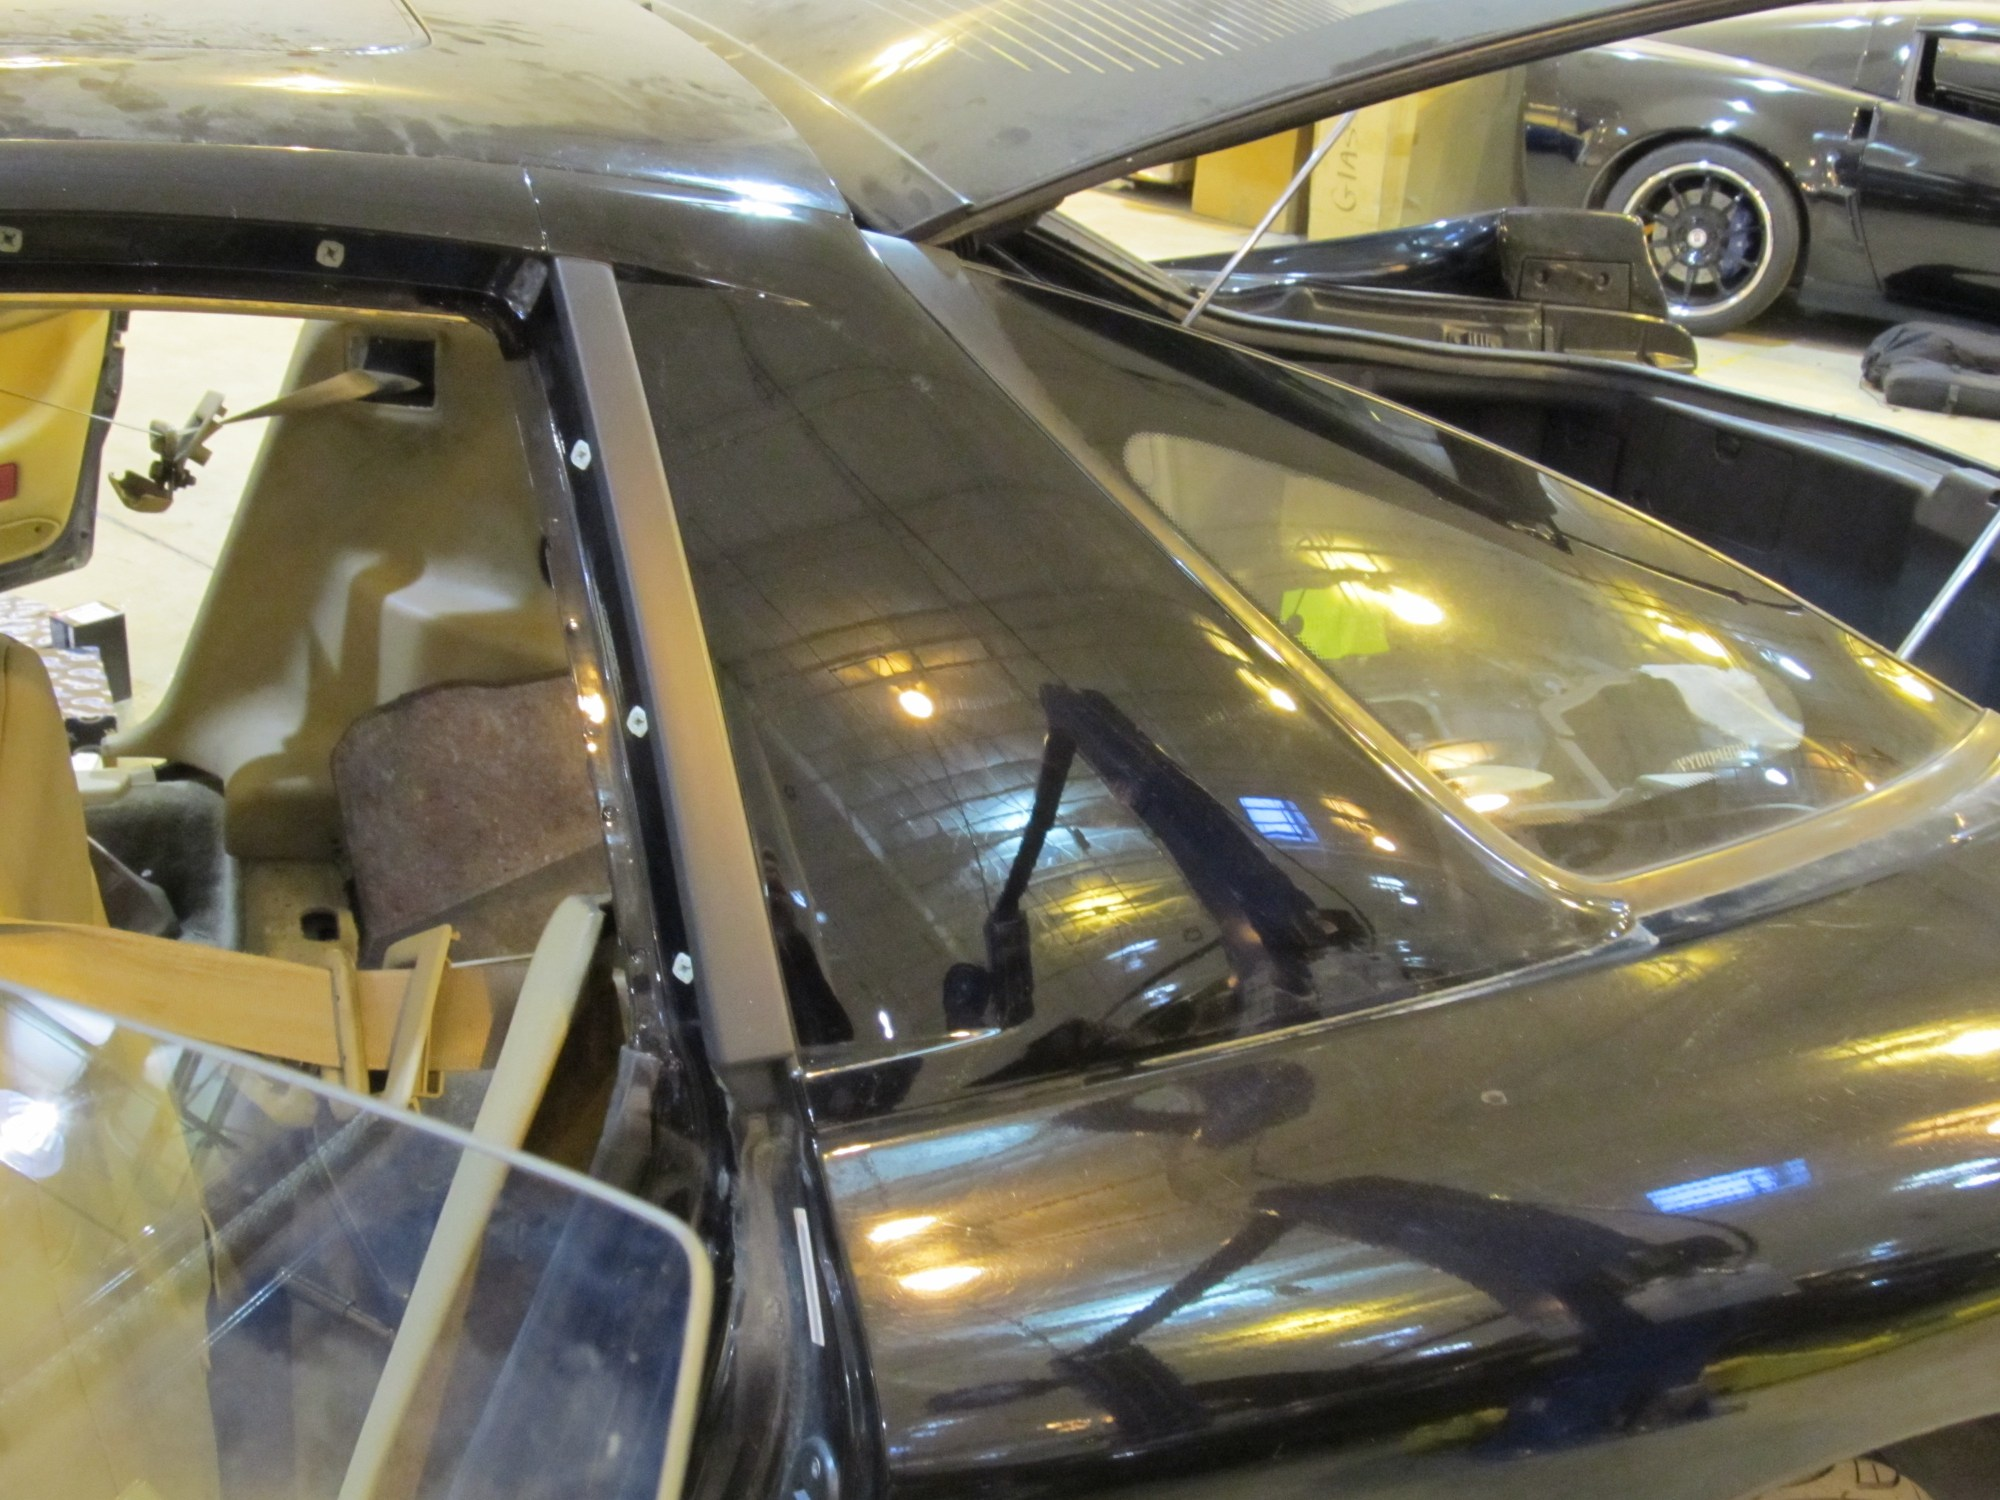 hight resolution of blkdrgn2483 1997 mitsubishi 3000gt 31890914022 original blkdrgn2483 1997 mitsubishi 3000gt 31890914021 original